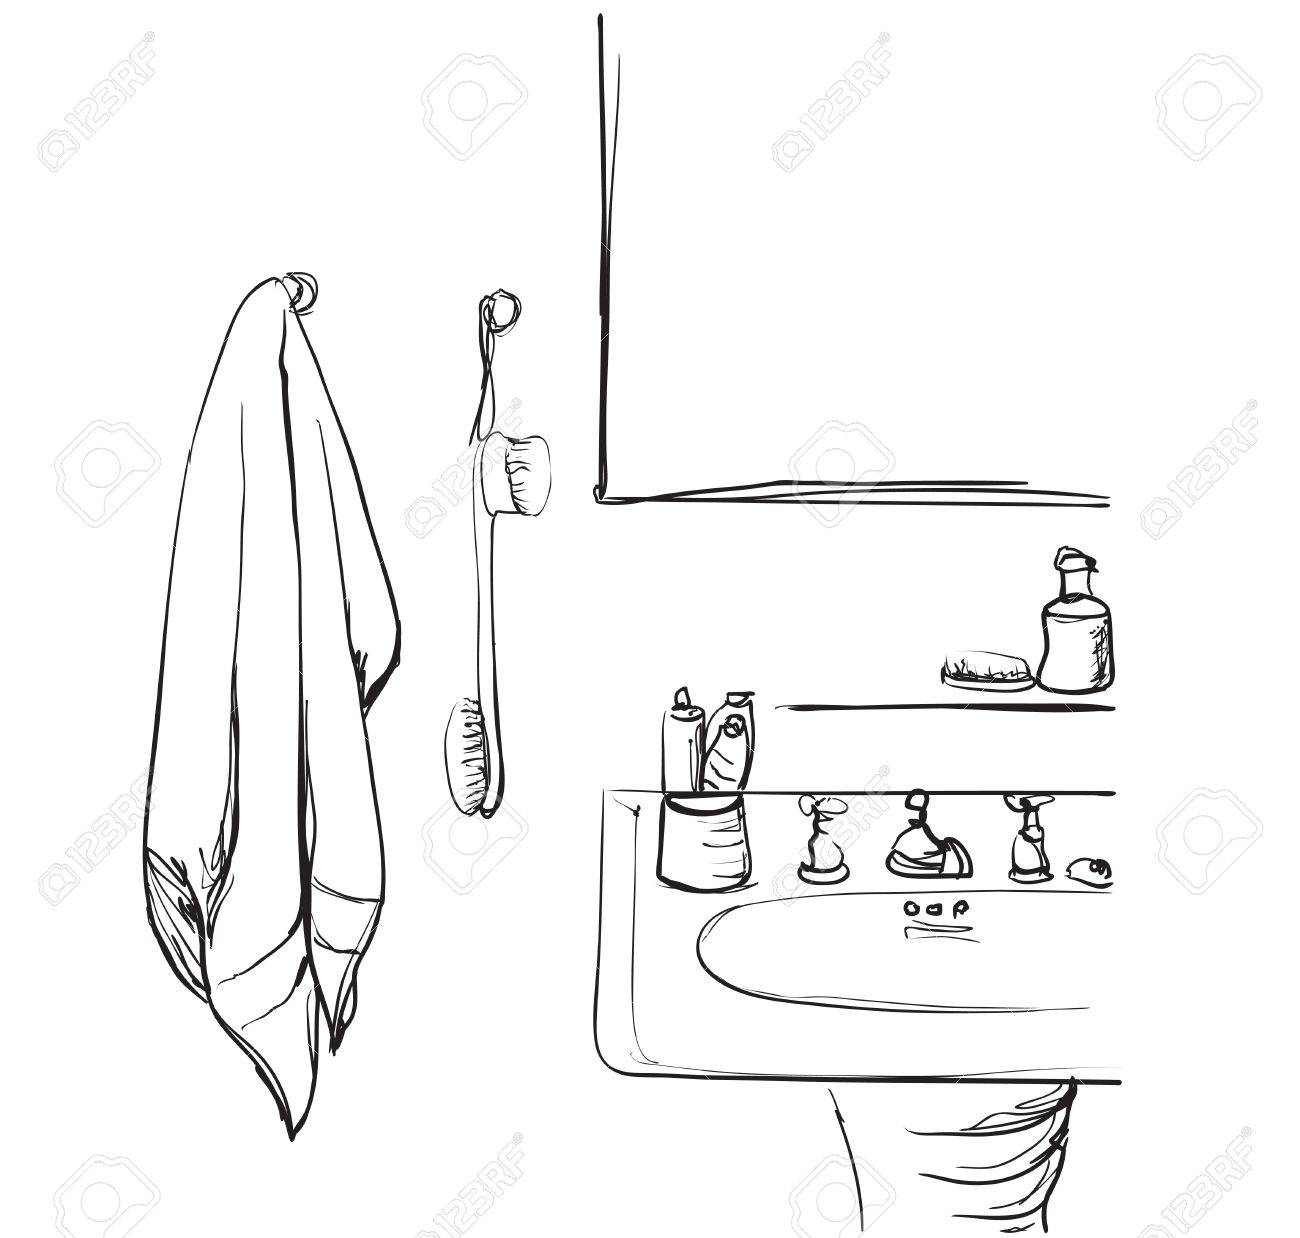 hand mirror sketch. Hand Drawn Bathroom Washbasin And Mirror Sketch Element. Stock Vector - 75491568 C